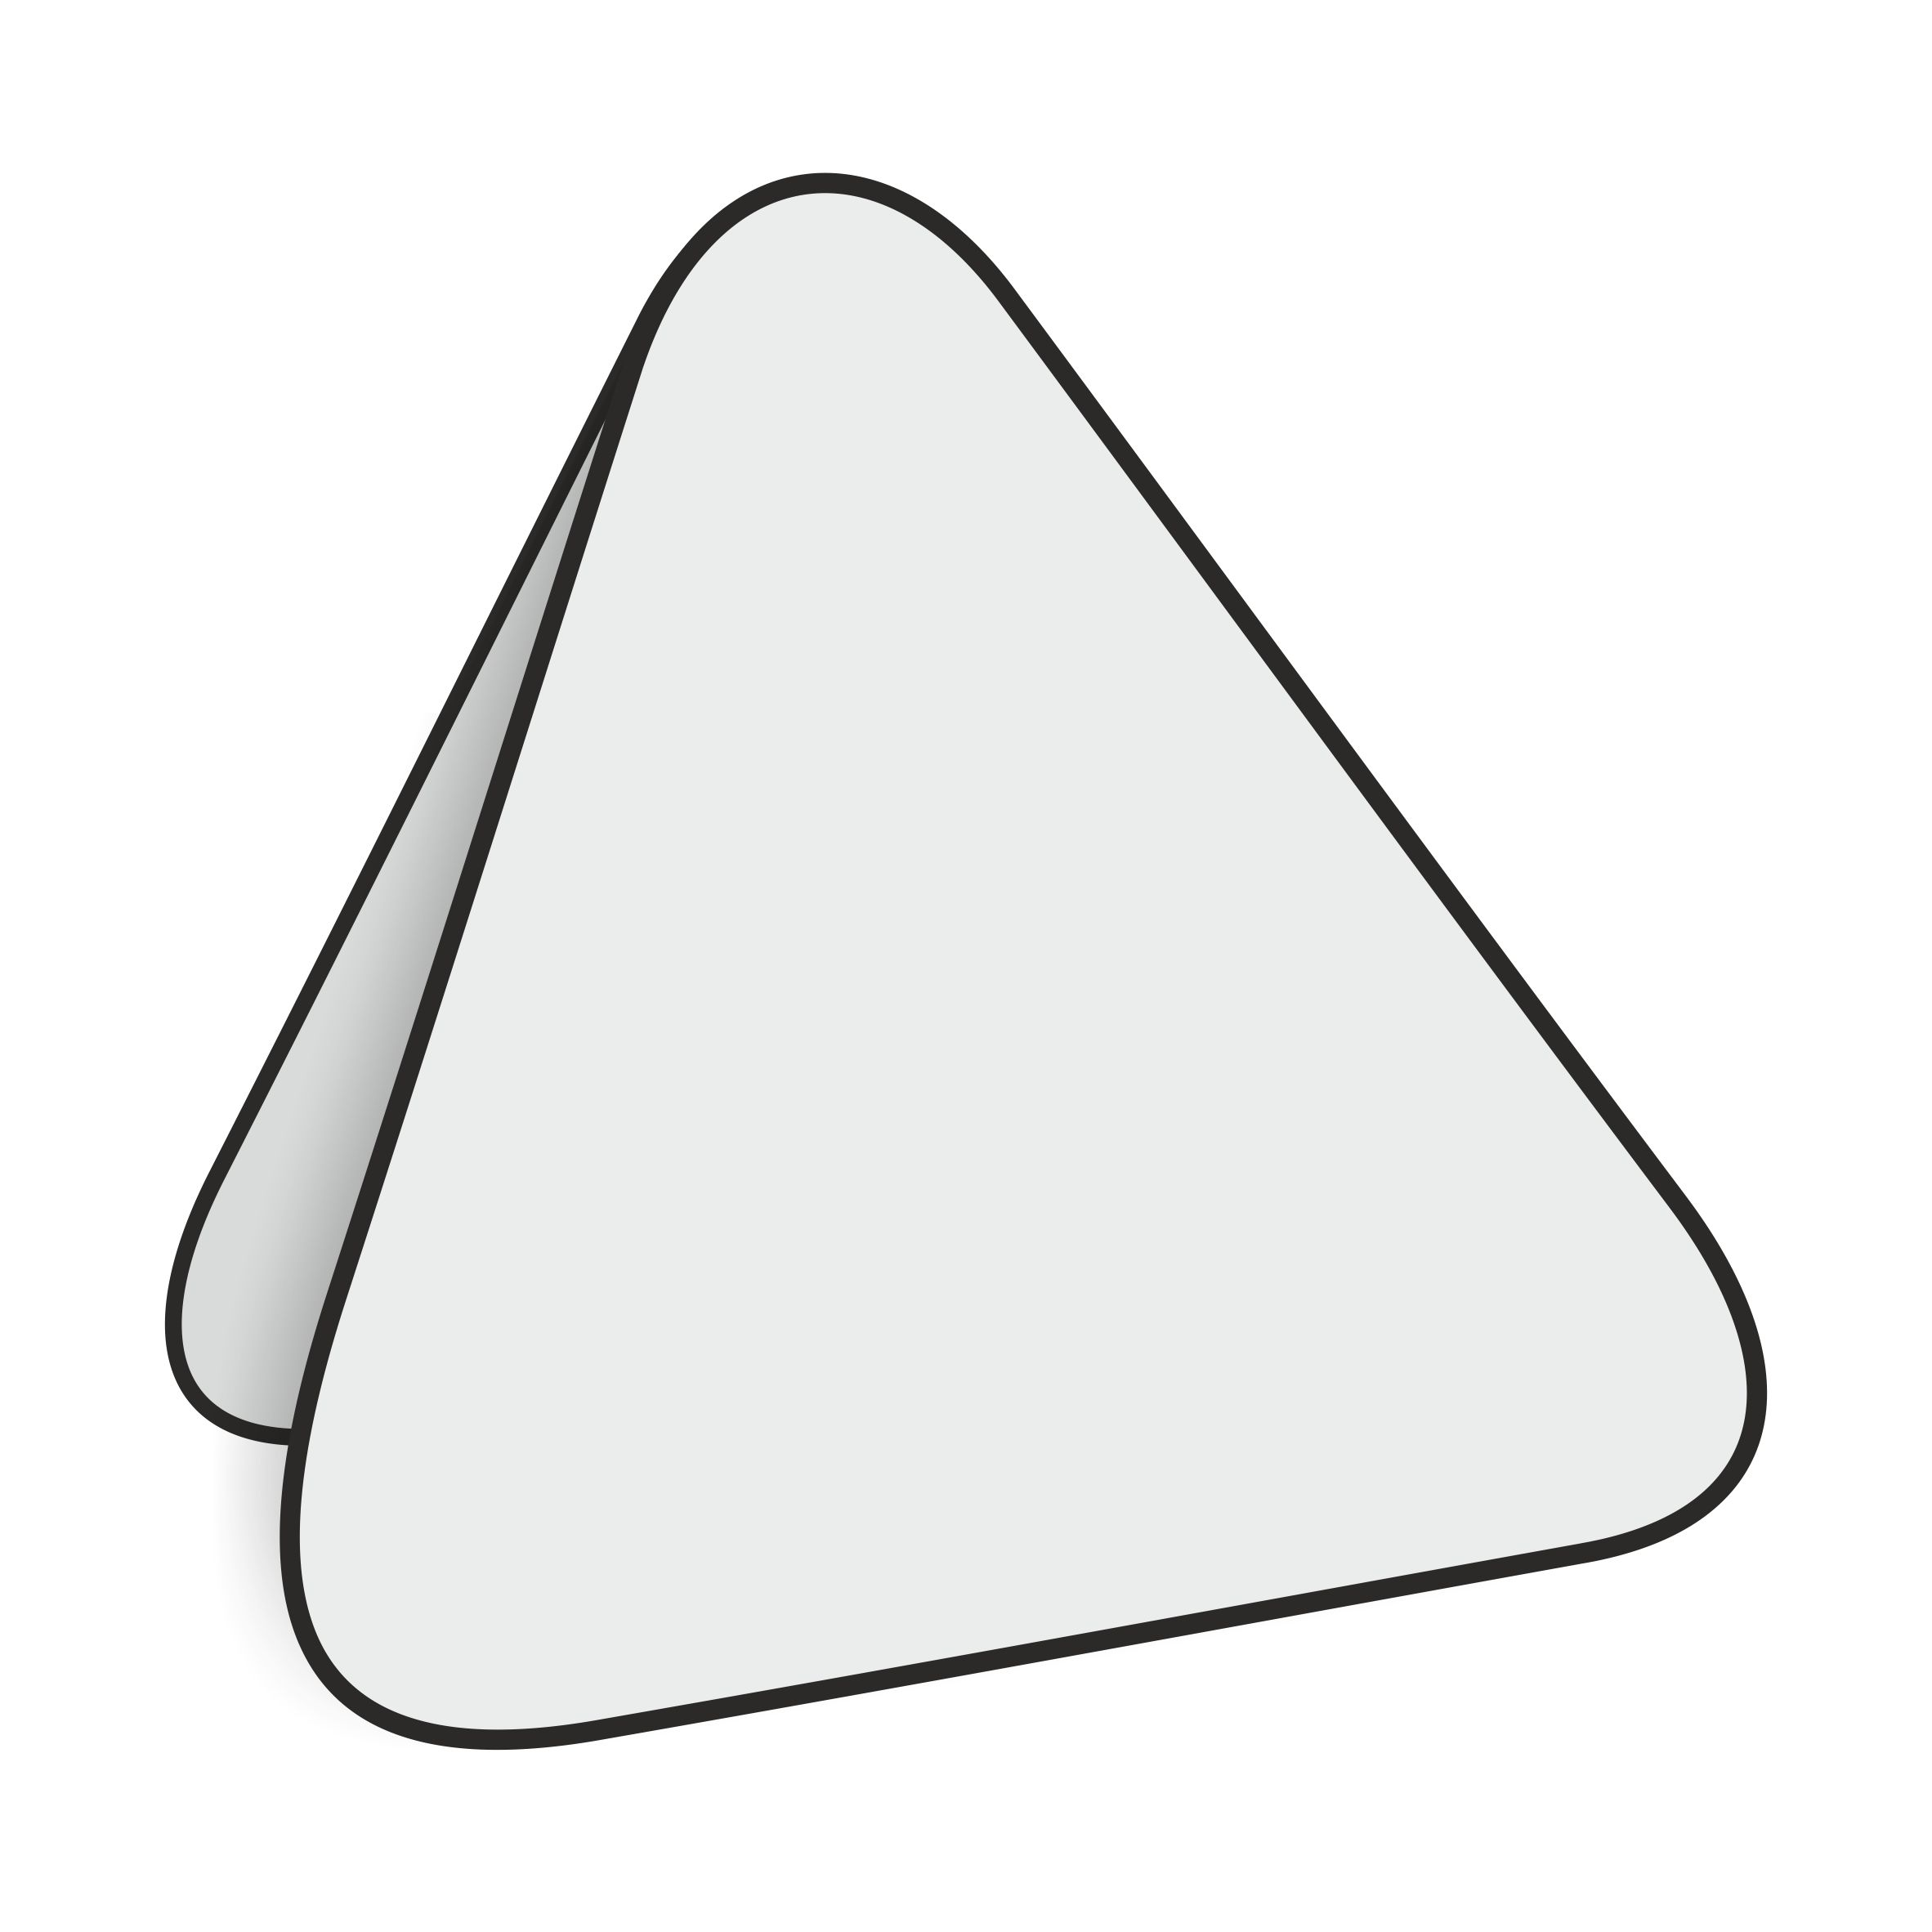 pop_out_triangle.jpg